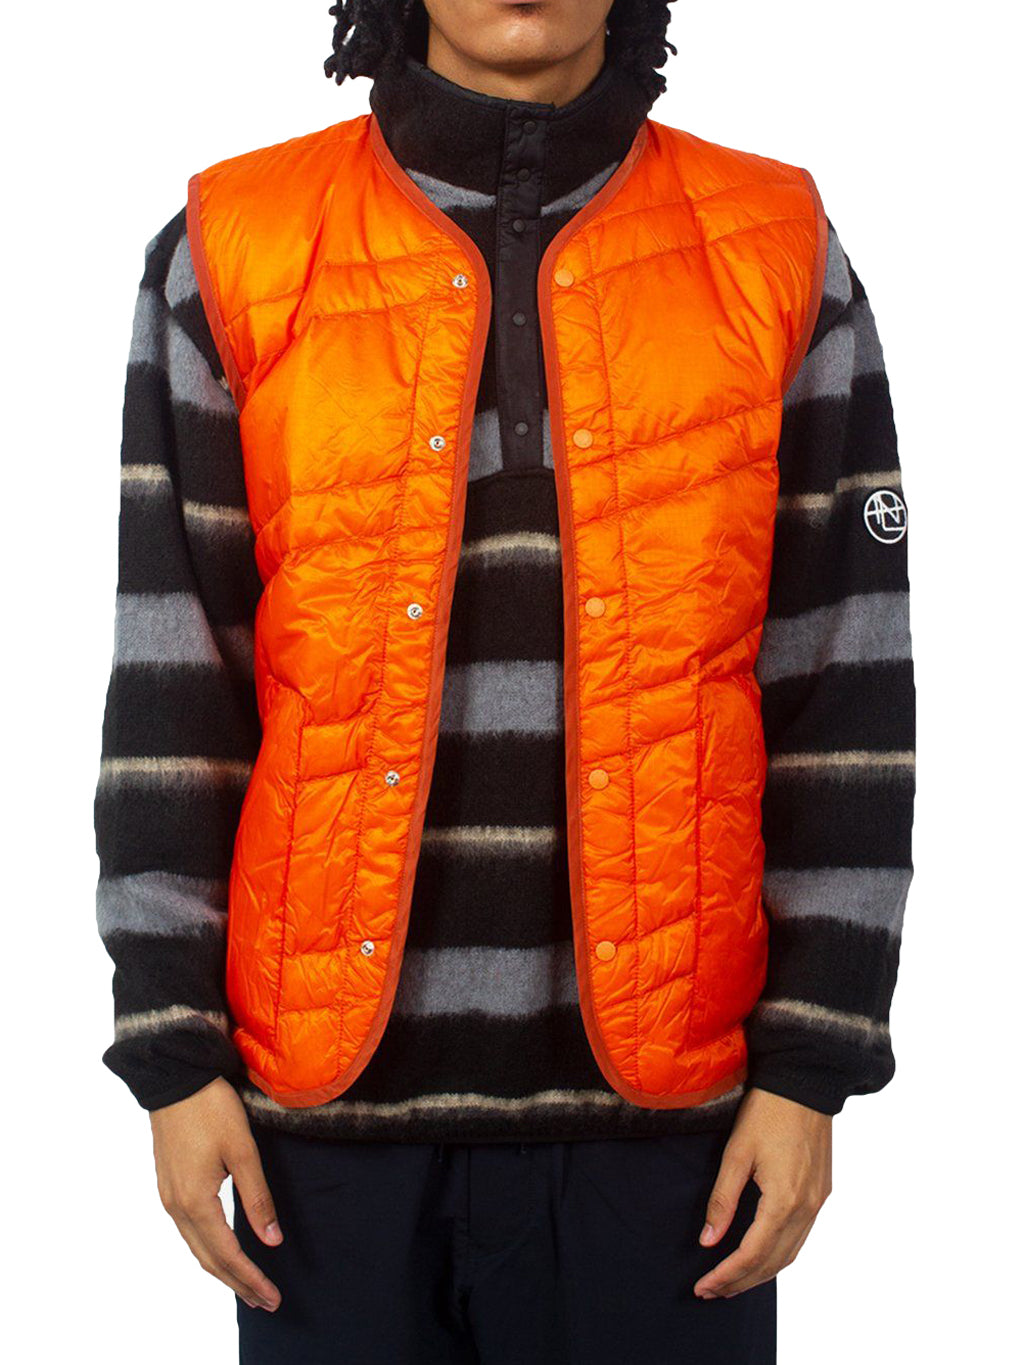 Orange Down Vests